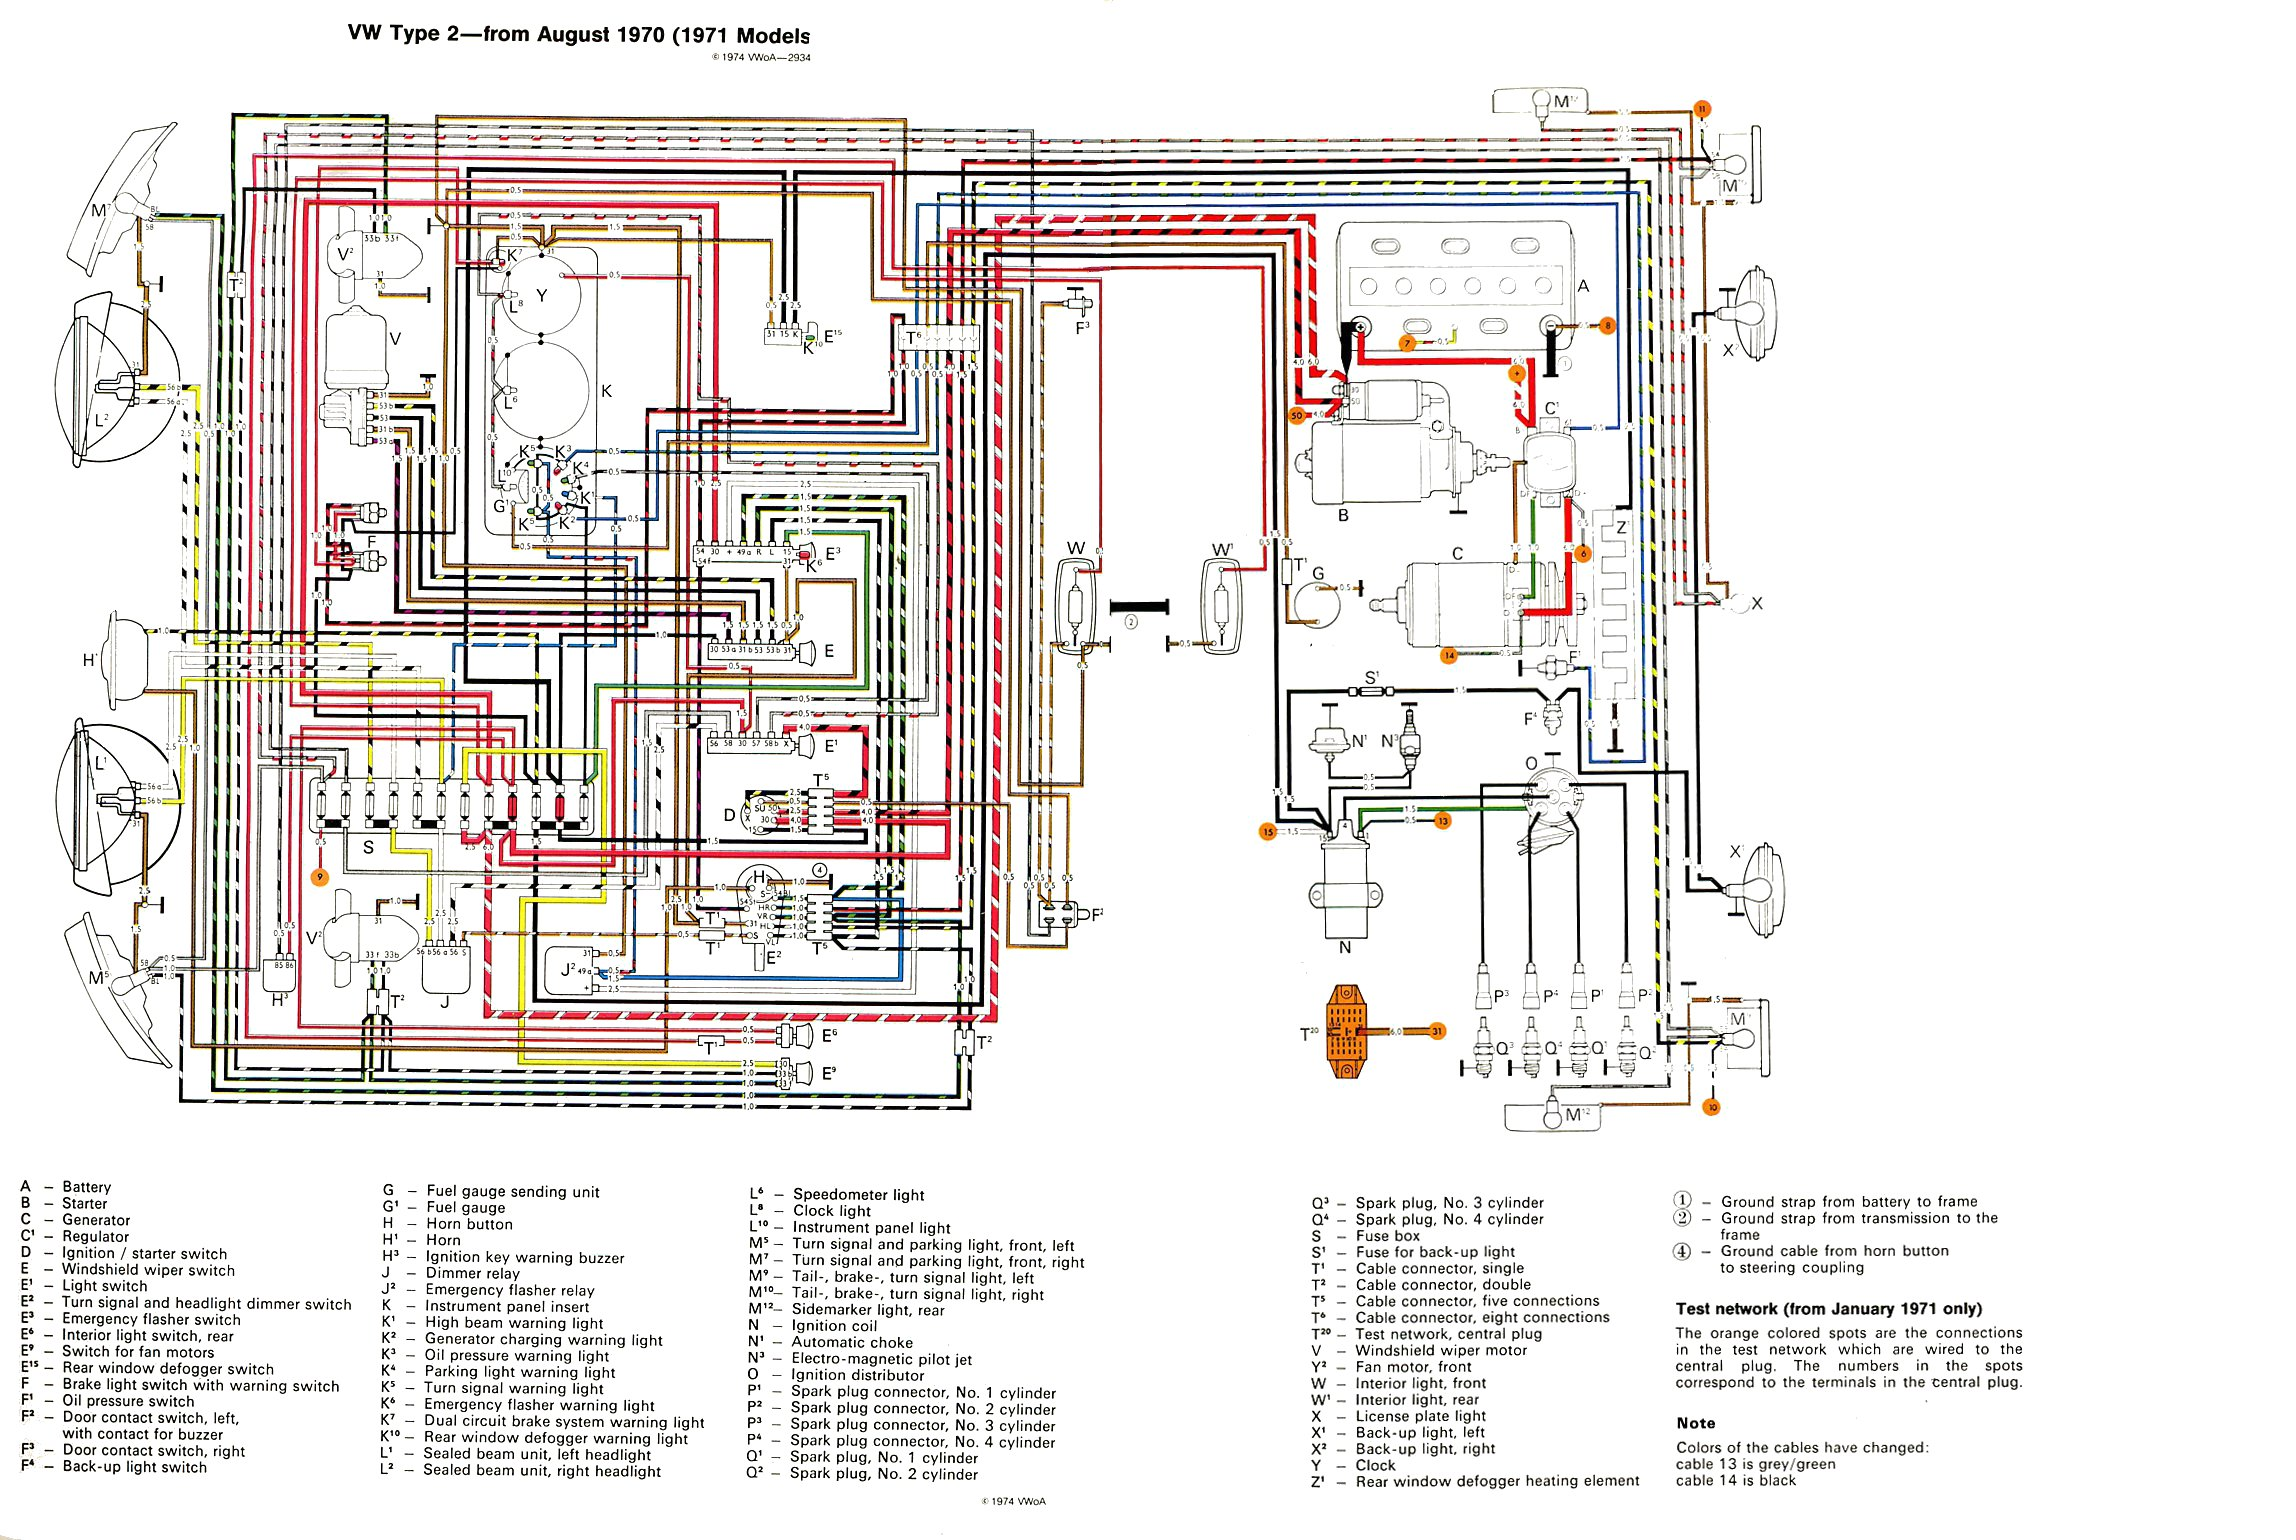 76 Vw Bus Wiring Diagram - Wiring Diagram Blog Data Thomas Bus Wiring Diagrams Online on thomas bus logo, thomas bus chevy, thomas school bus wiring, air compressor piping layout diagrams, thomas bus blueprints, thomas bus seats, school bus brake system diagrams, thomas bus lights, thomas bus gmc, thomas bus ford, thomas bus chassis, thomas bus assembly, thomas bus engine, thomas international bus, commercial truck pre-trip diagrams, military diagrams, thomas bus electrical diagrams, thomas hdx school bus, thomas bus rear suspension, thomas bus parts,